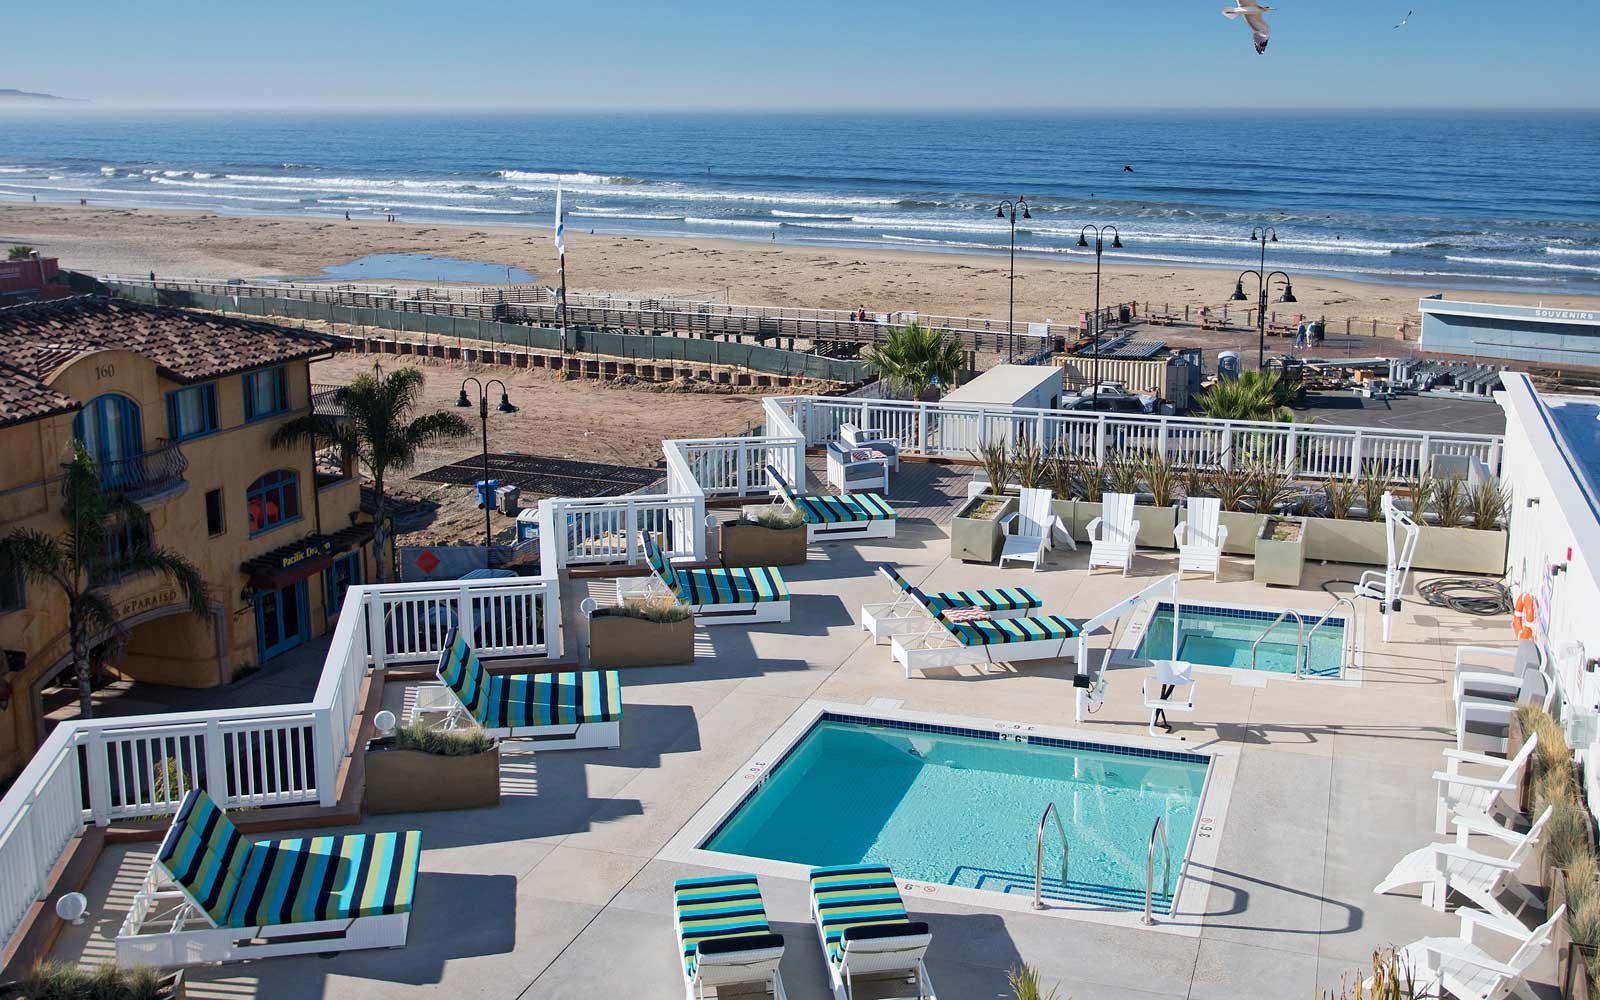 Stay At Inn At The Pier In Pismo Beach For Only 118 Per